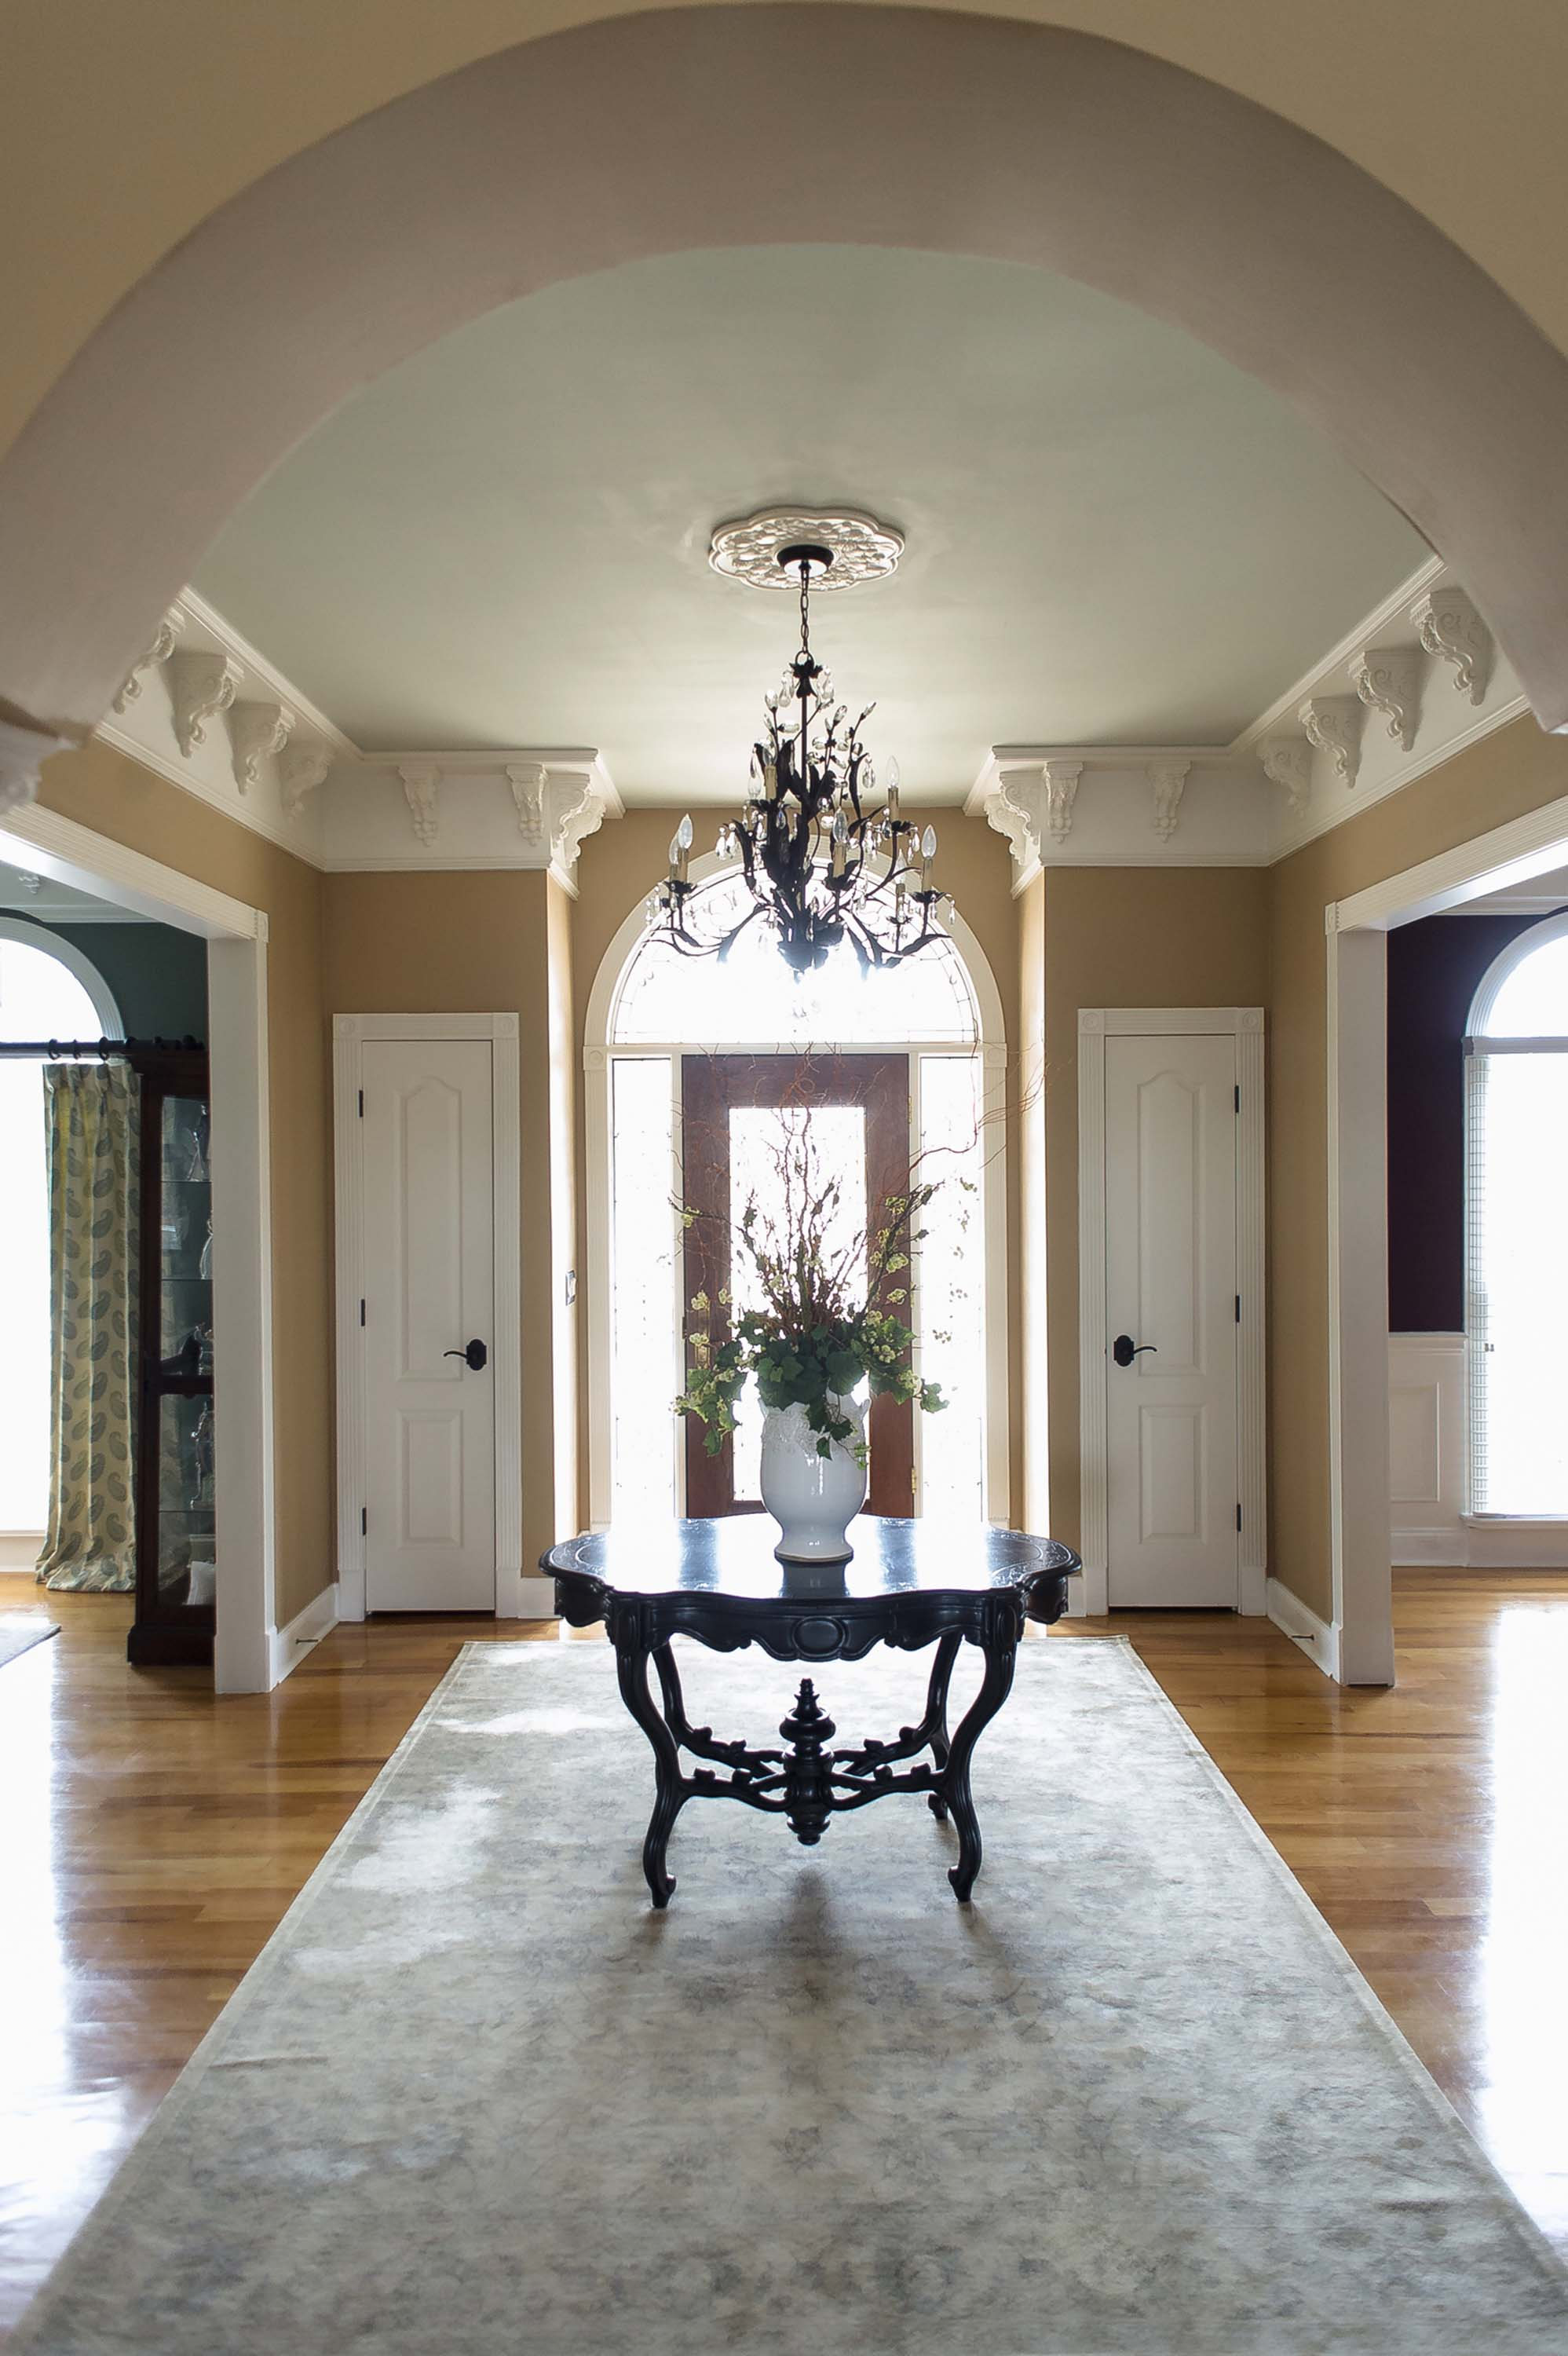 House interior entrance with wooden round table, chandelier and hardwood floor